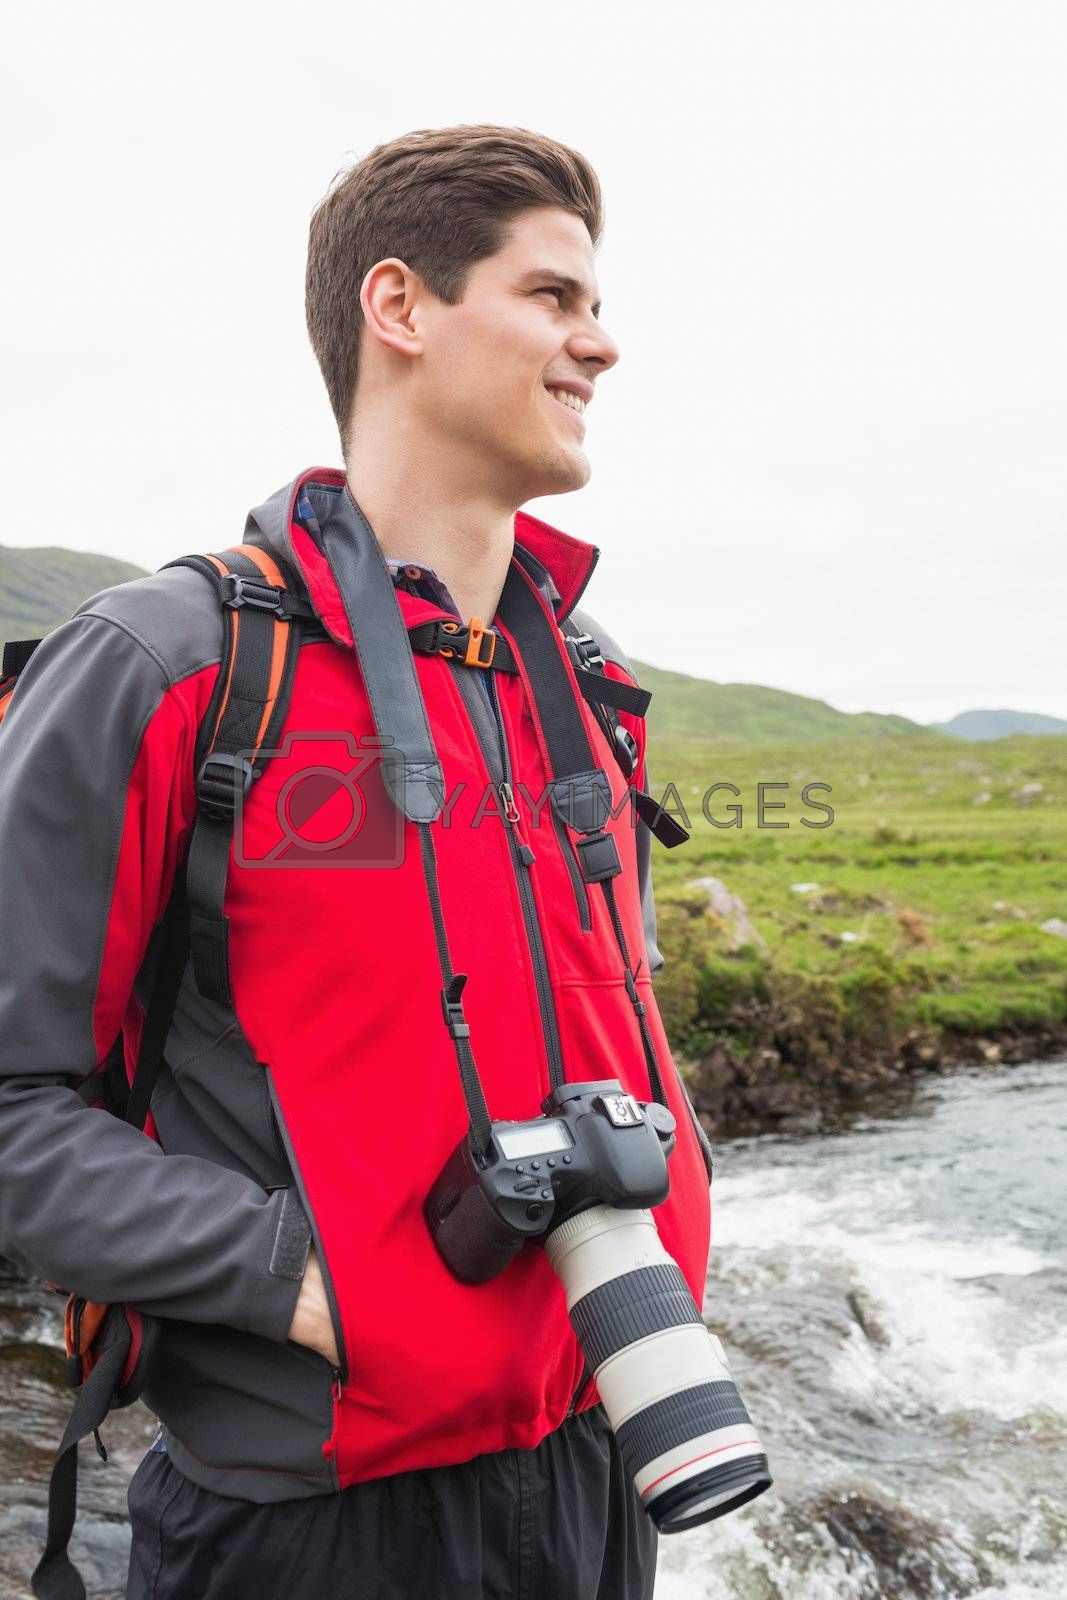 Brunette man on hike withcamera around his neck by Wavebreakmedia